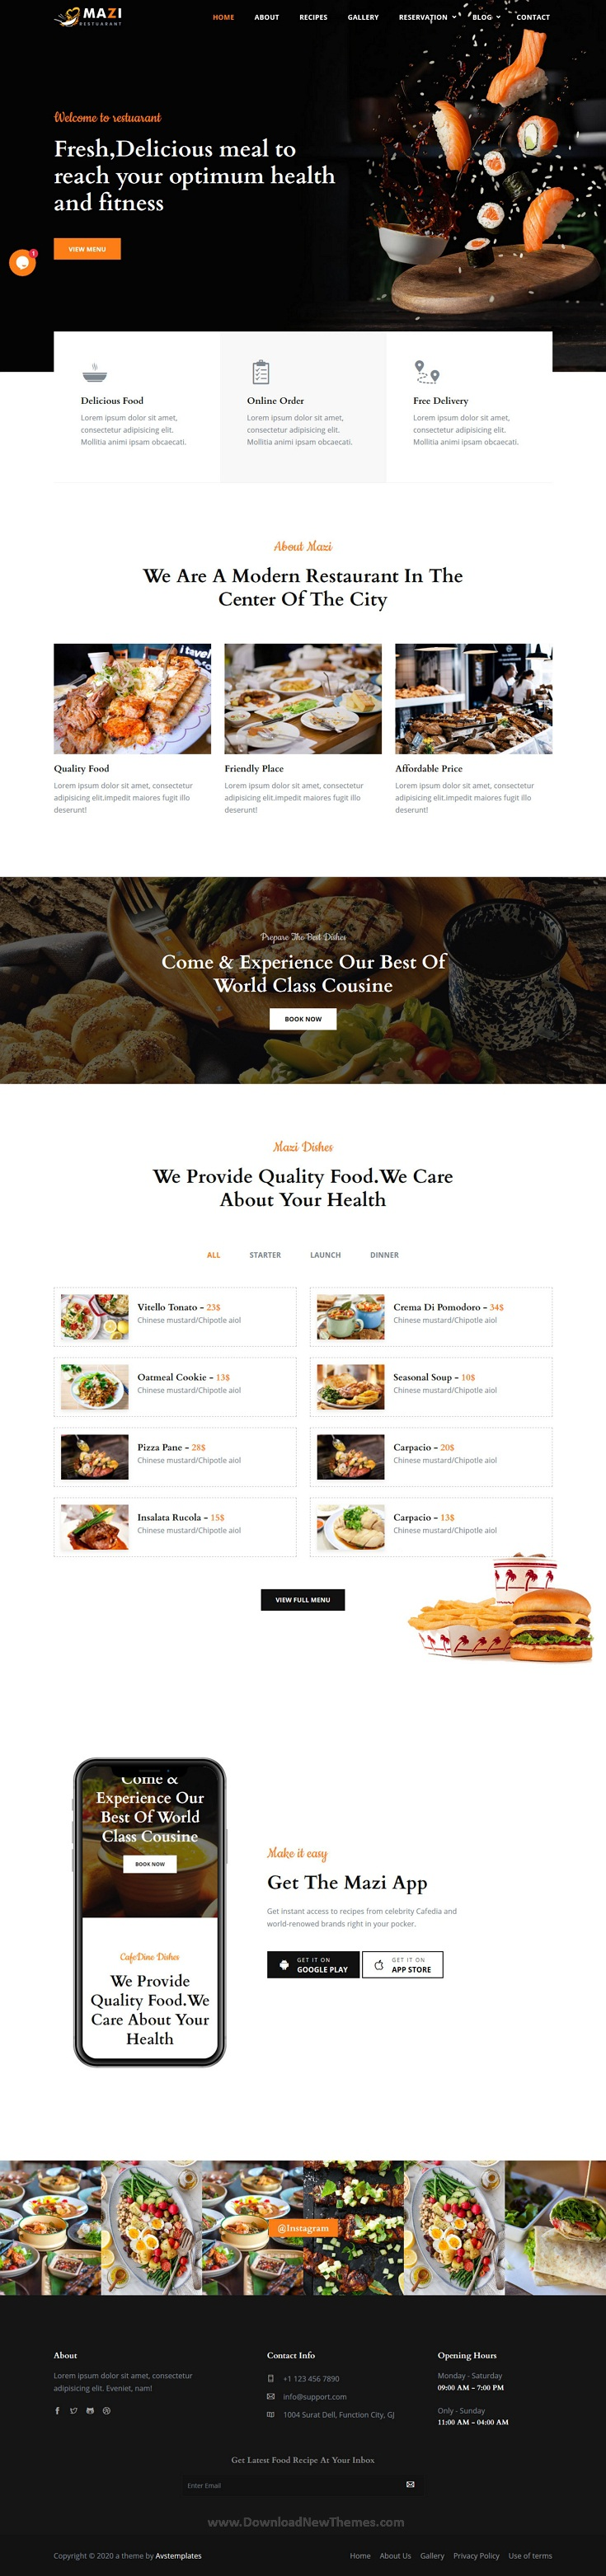 Fast Food & Restaurant Template